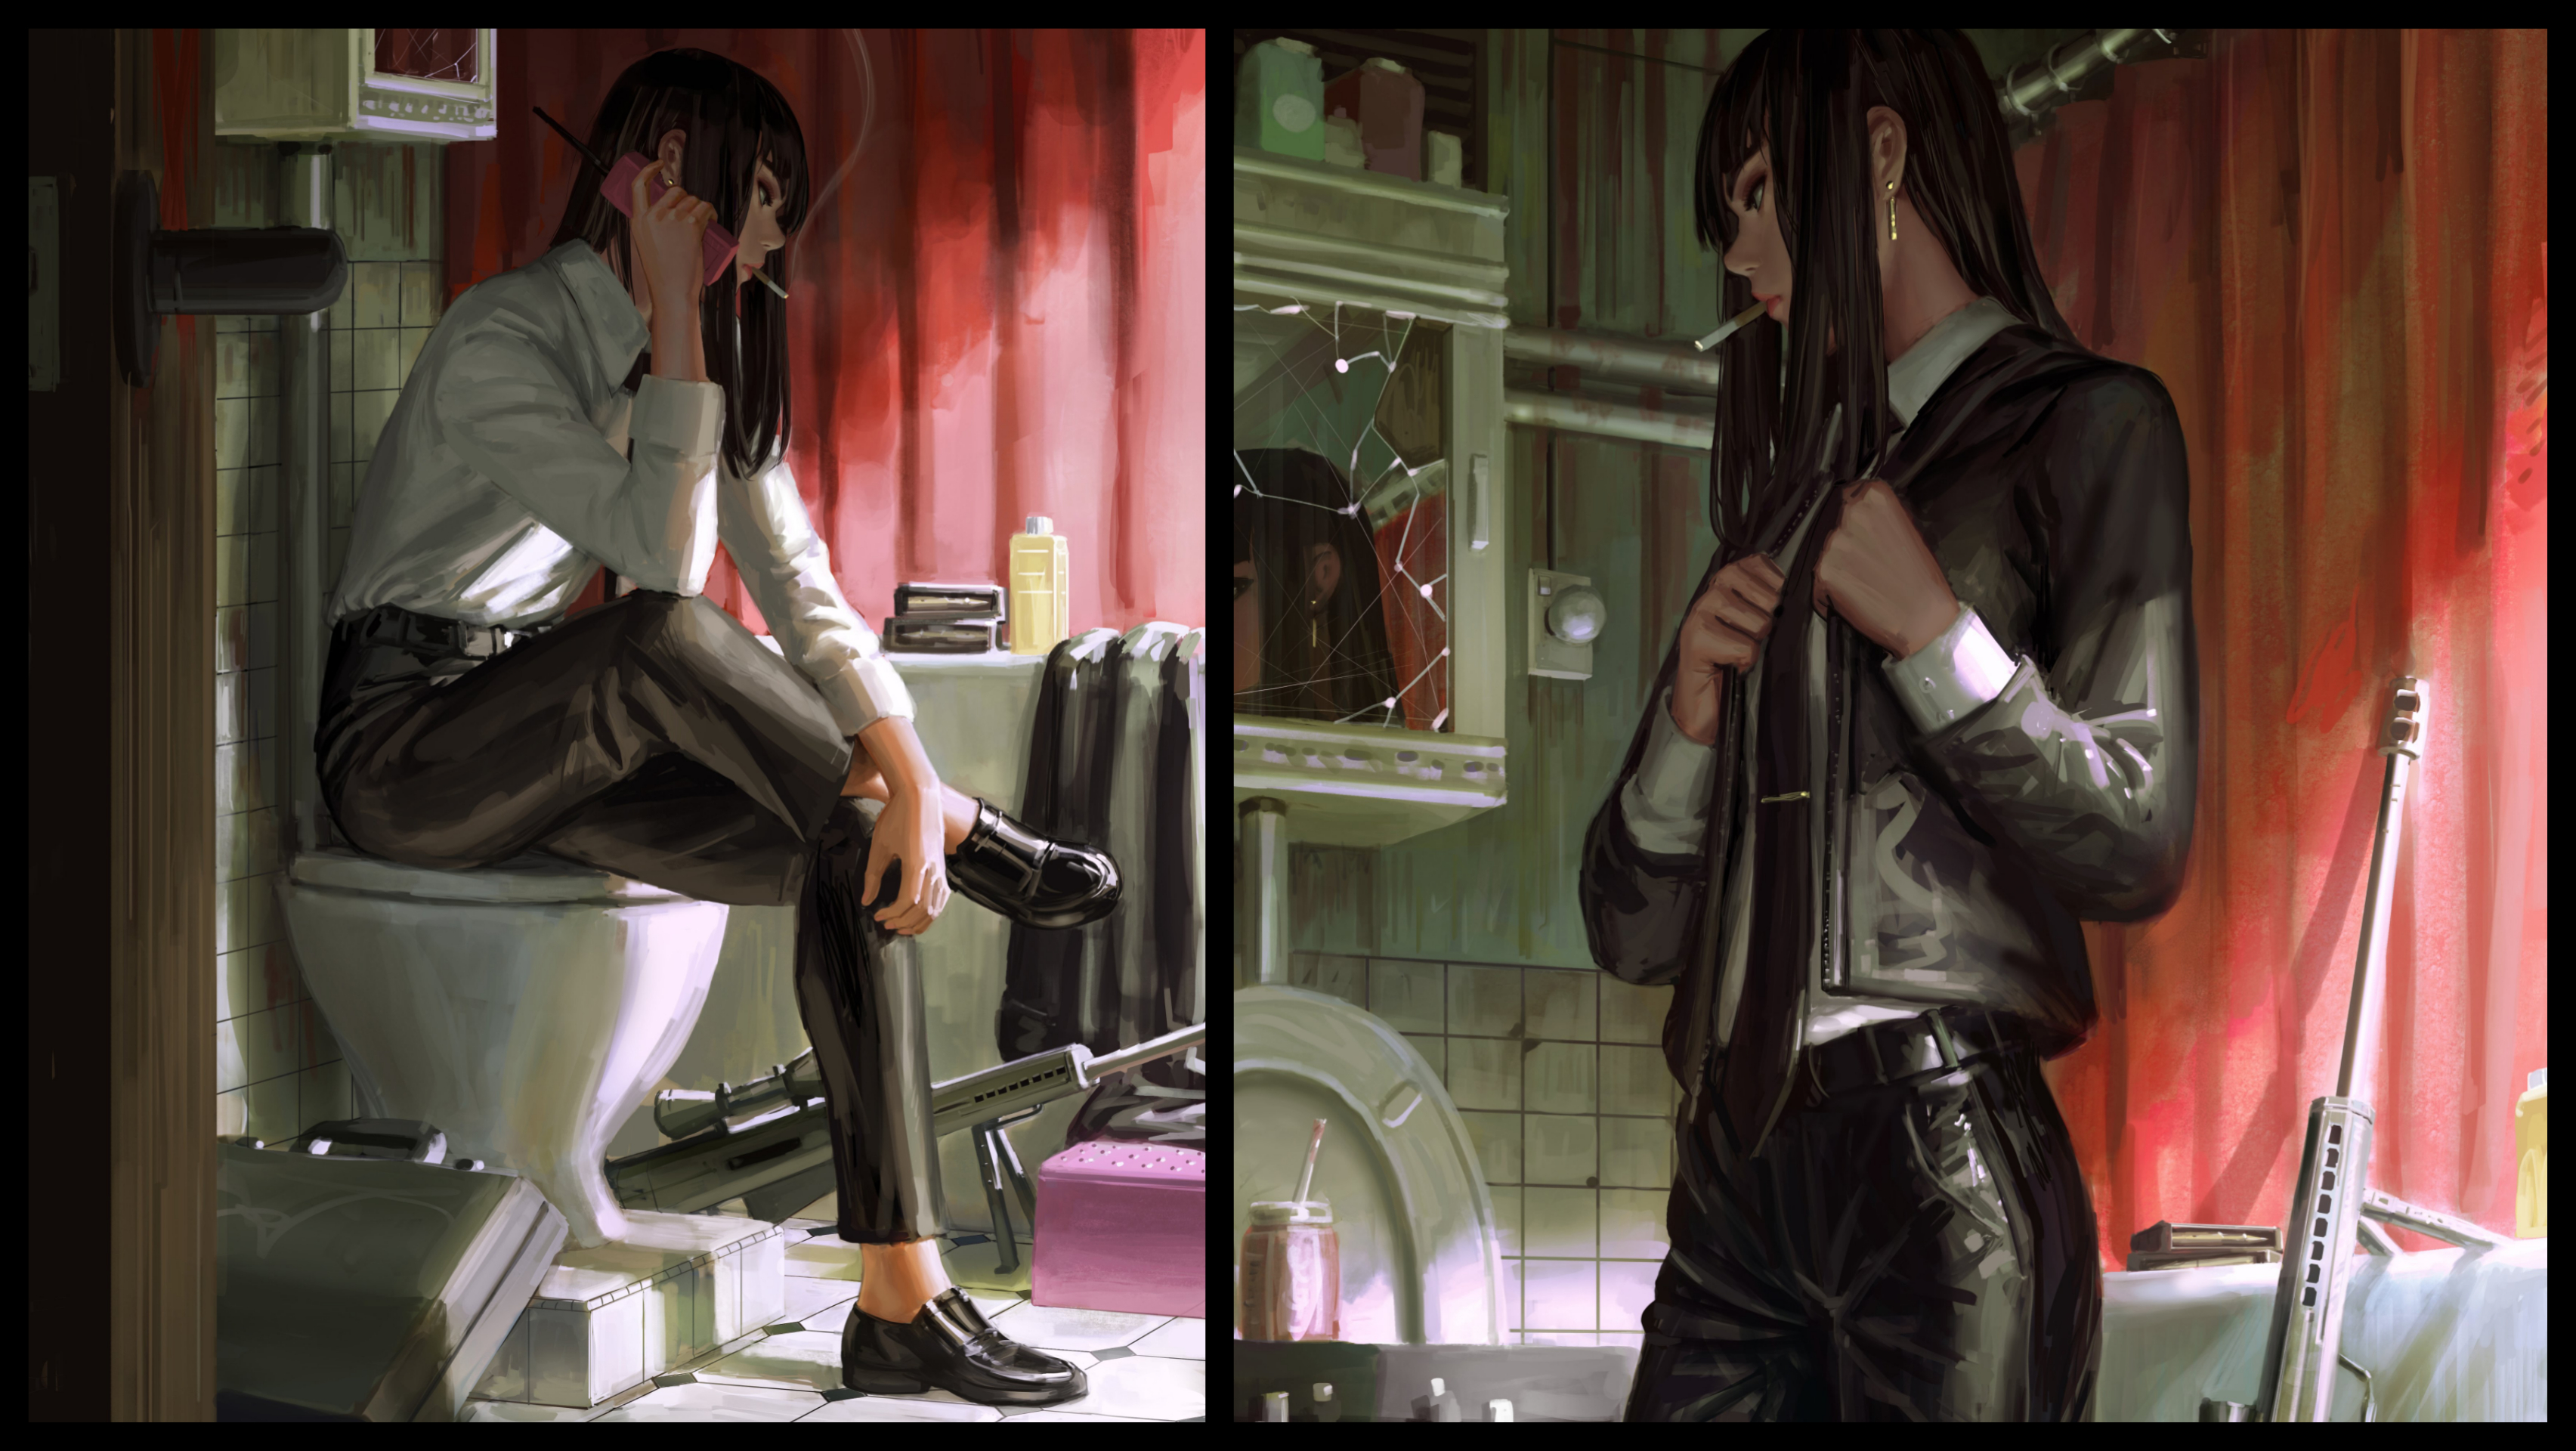 General 3409x1920 anime girls original characters Bad guys GUWEIZ smoking